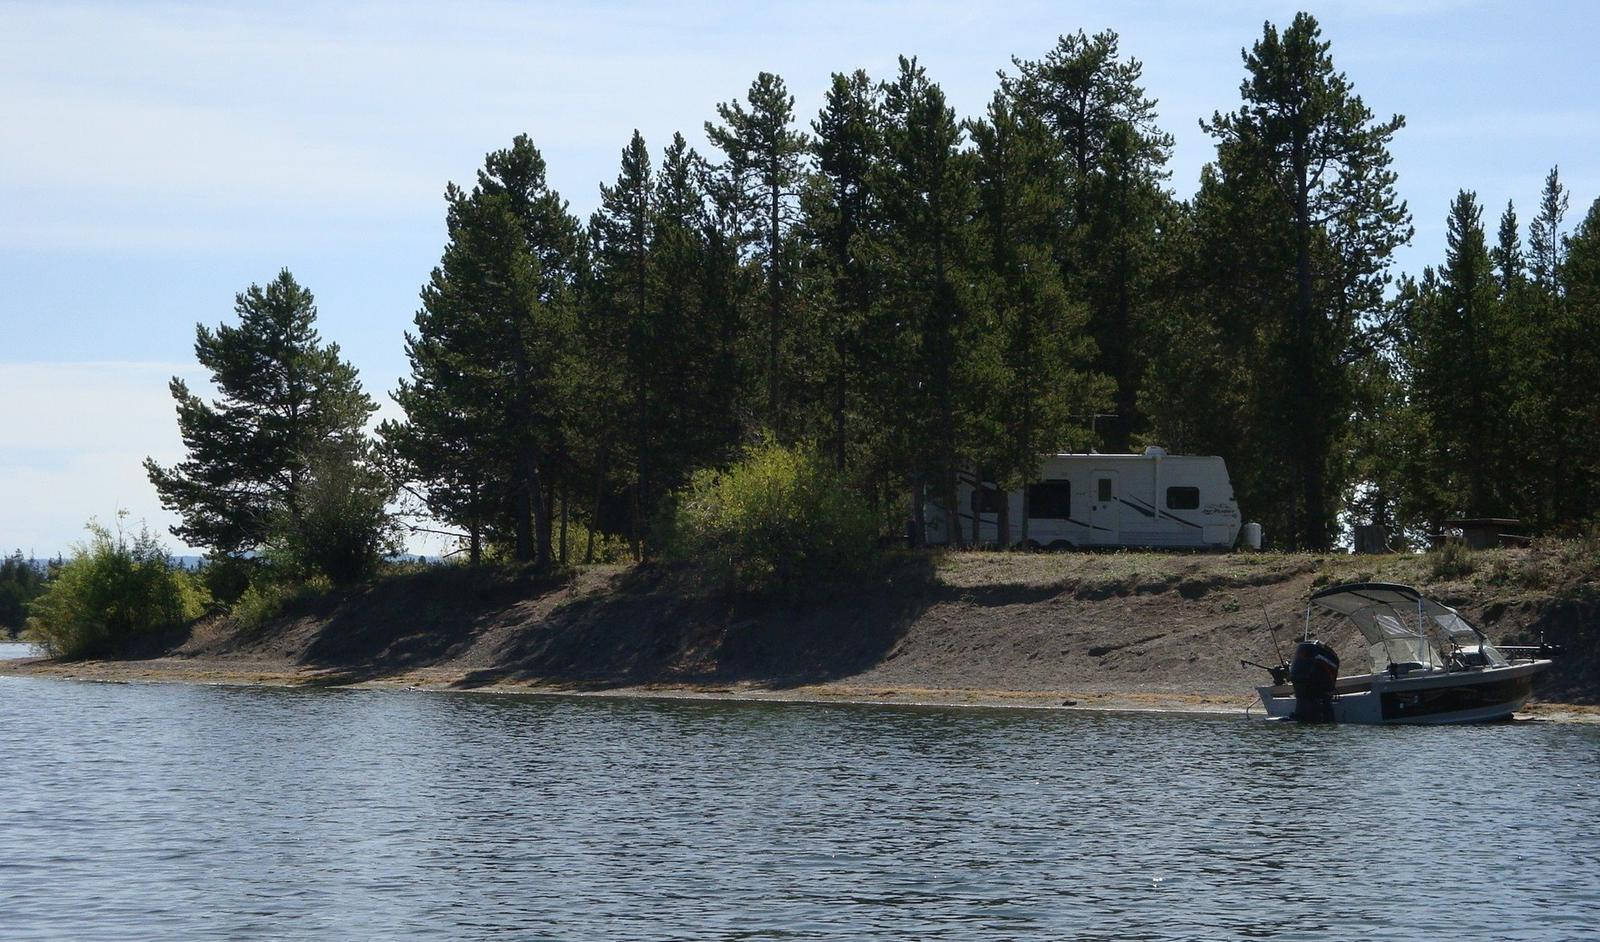 View from Hebgen Lake - Lake, boat and RV surrounded by pine treesLonesomehurst Campground